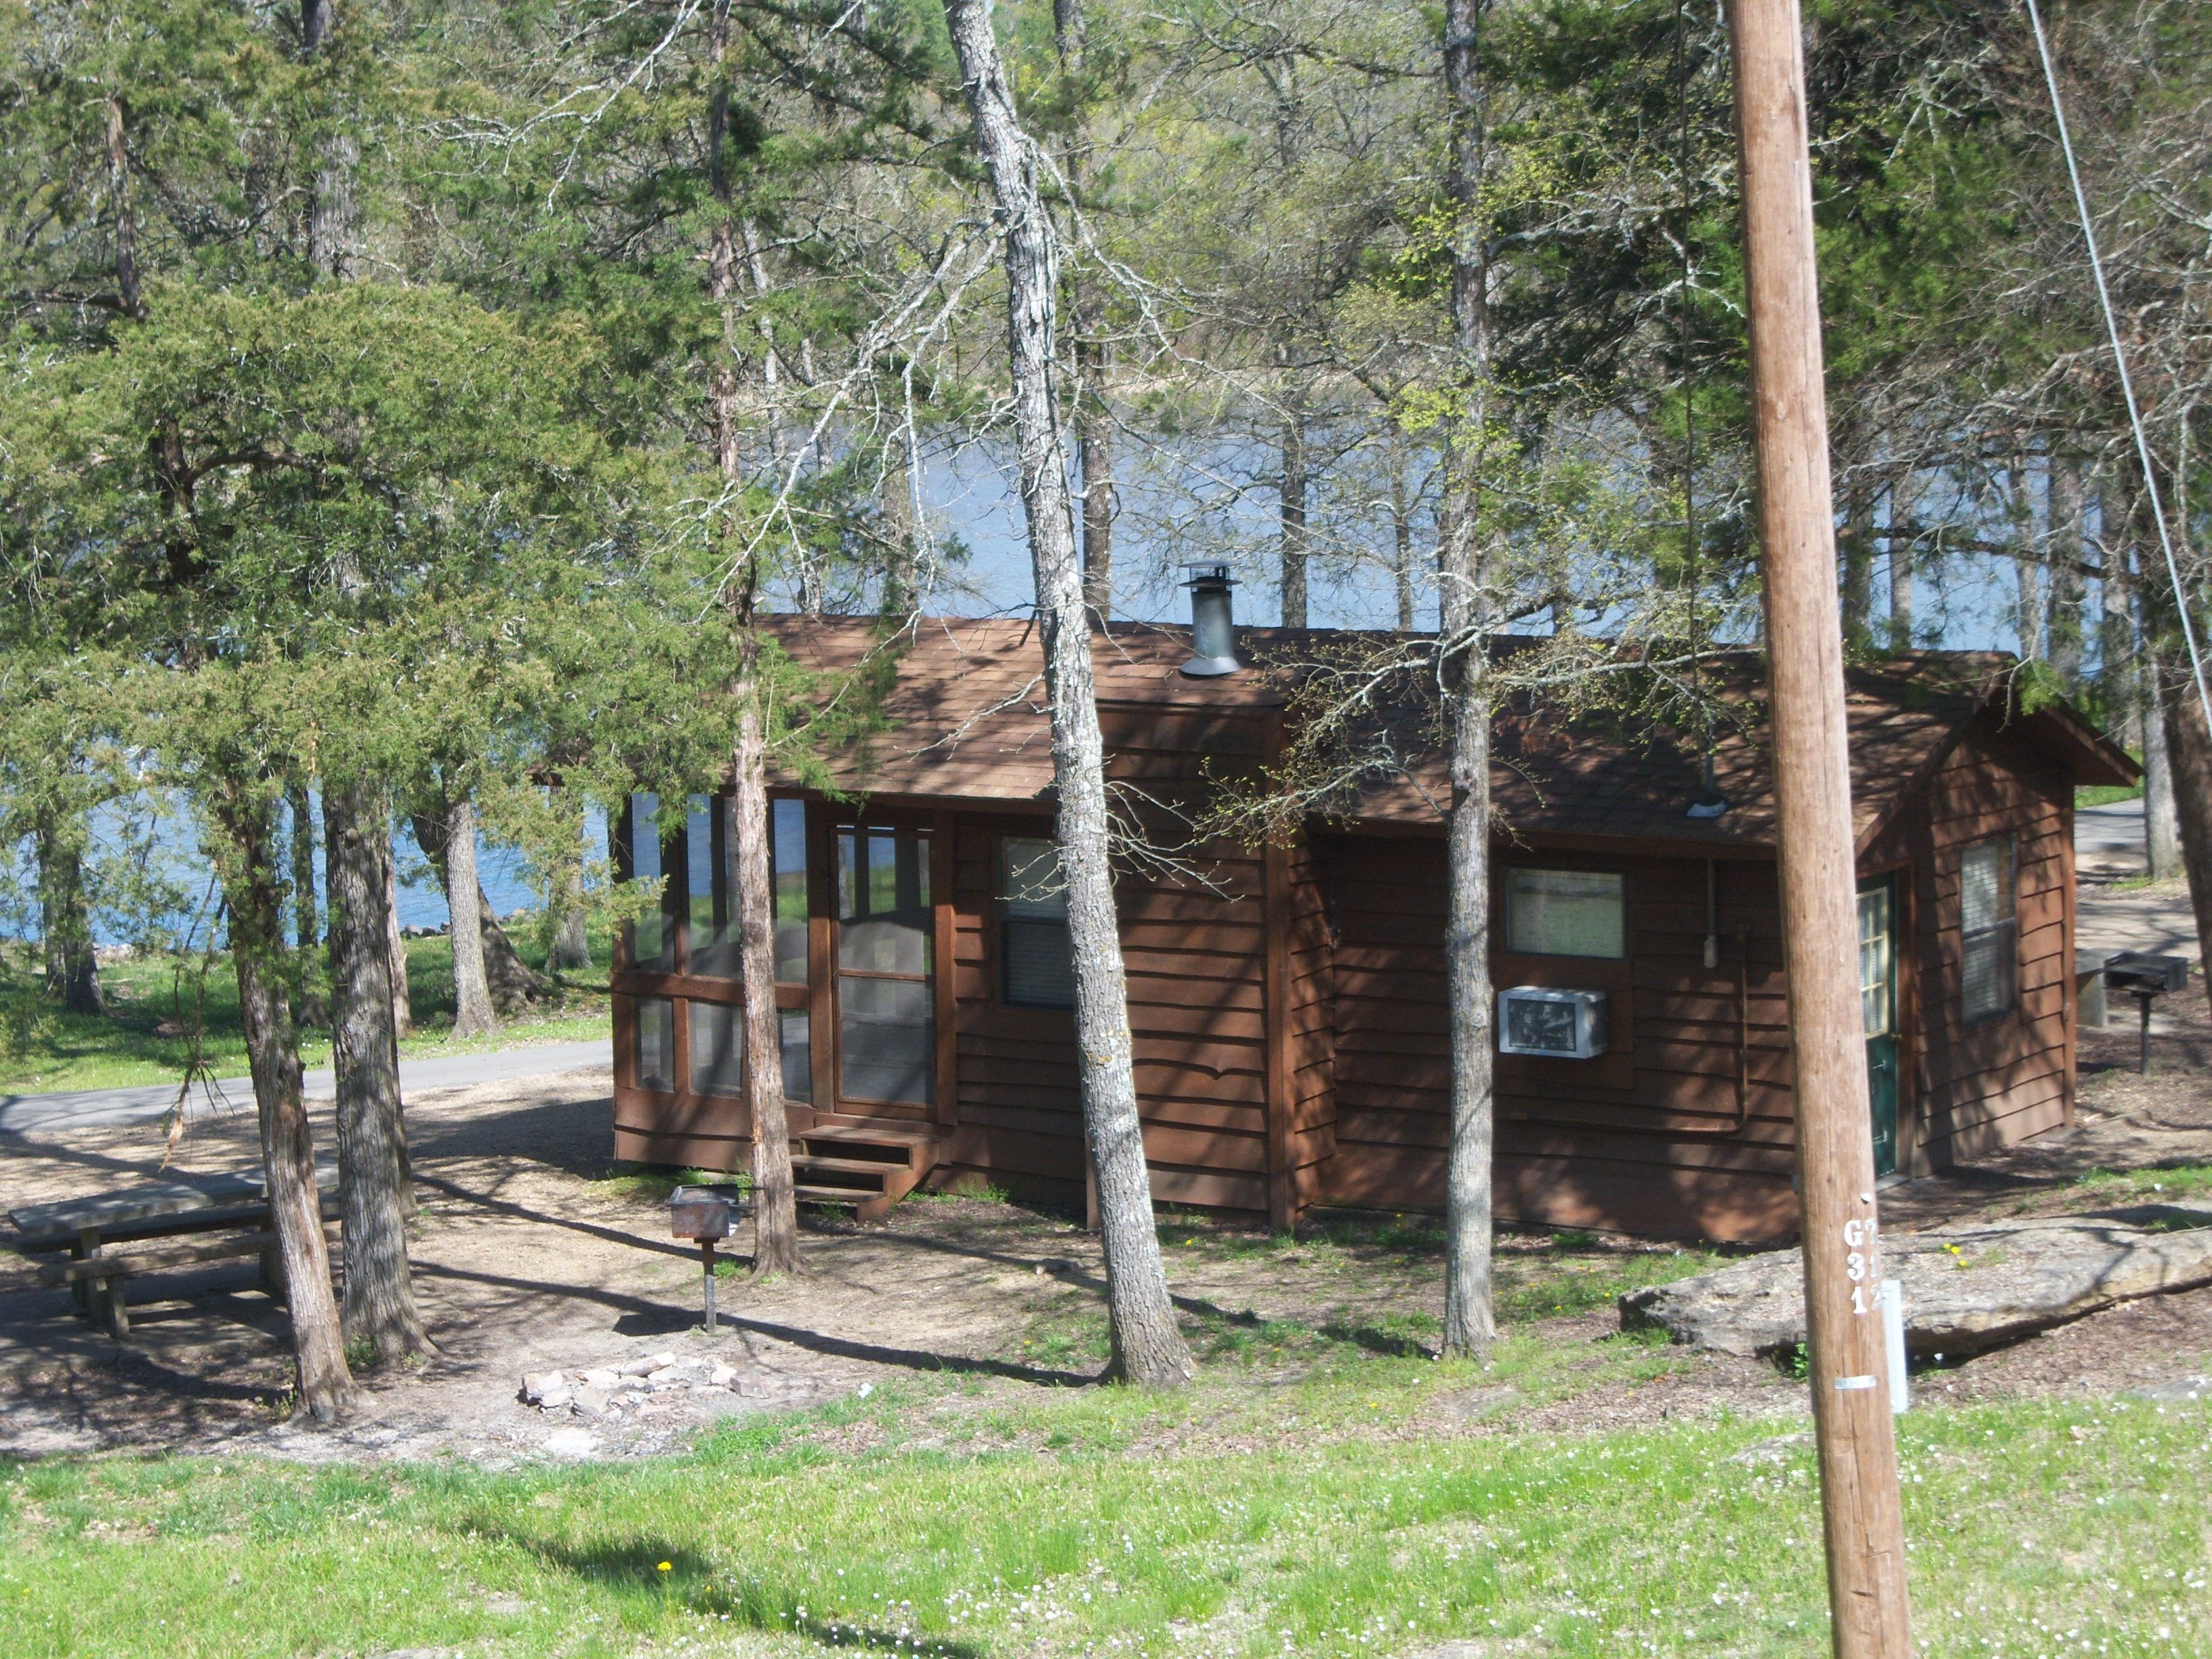 holiday hotel tahlequah us lake mkoth cabins by tenkiller en holidayinnexpress suites and express hotels ihg hoteldetail inn